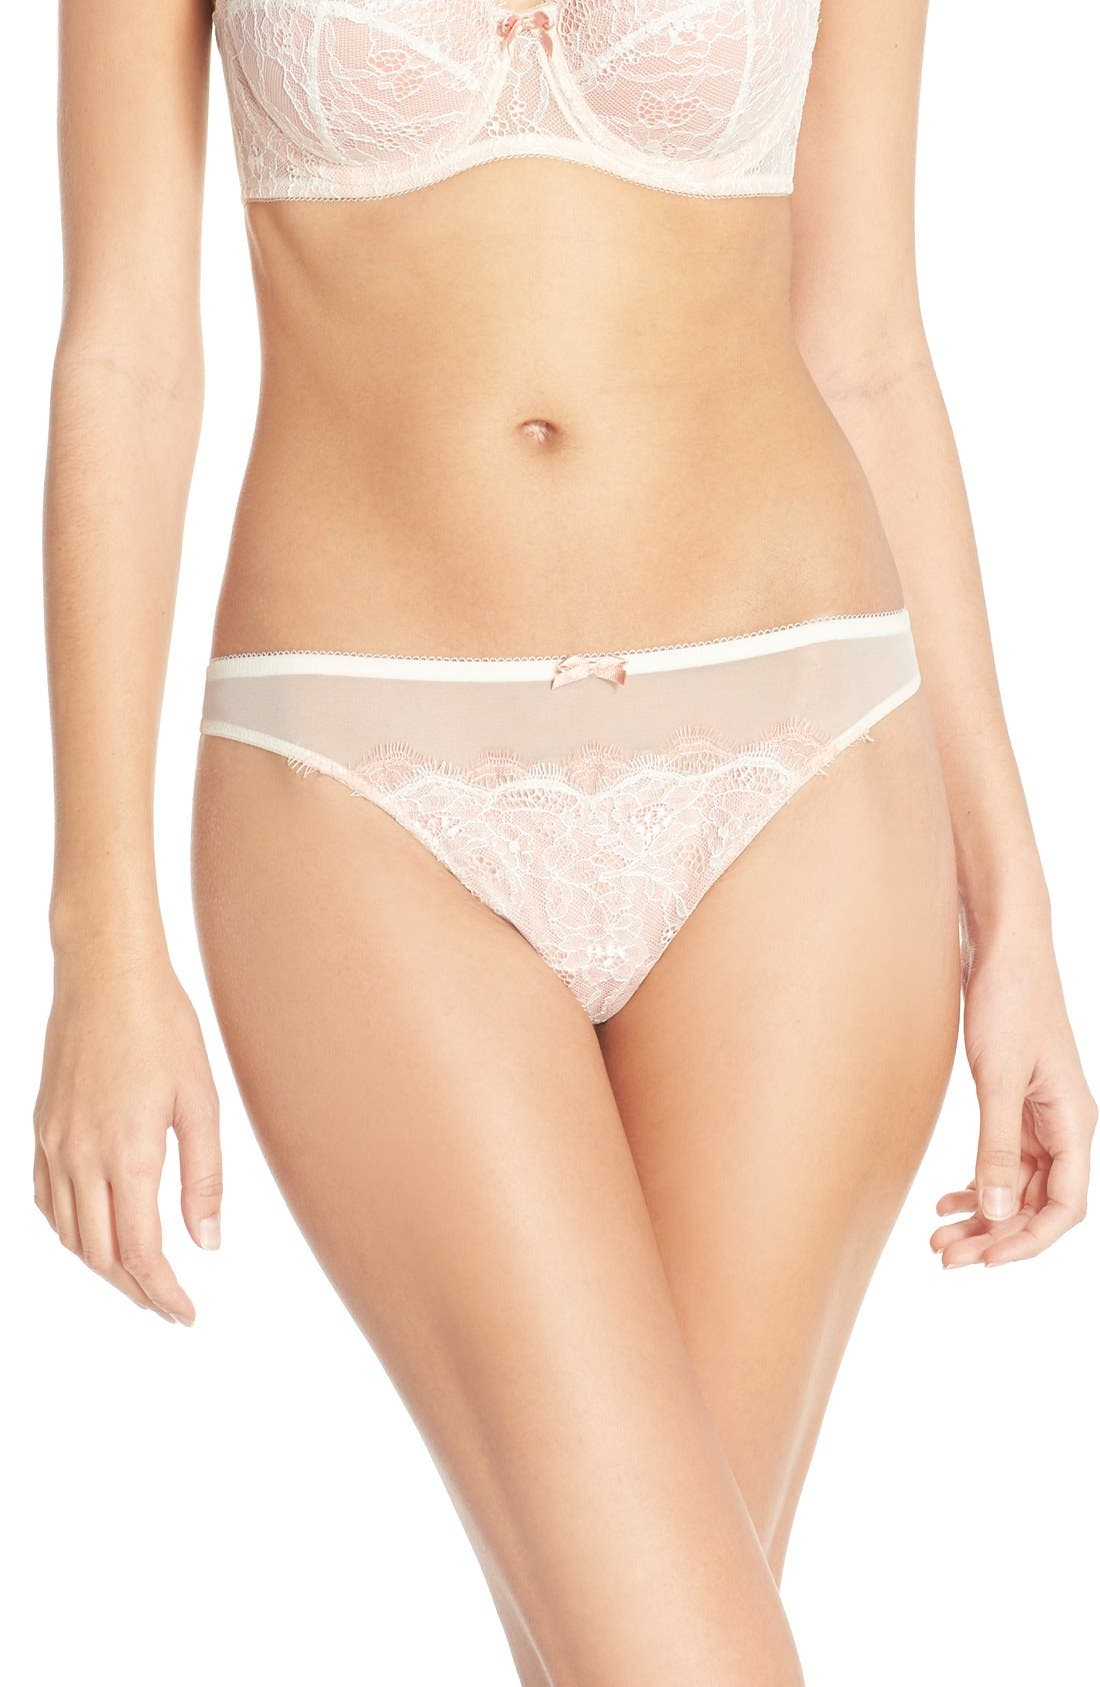 'b.sultry' Lace Front Thong,                         Main,                         color, VANILLA ICE/ PEACH BEIGE